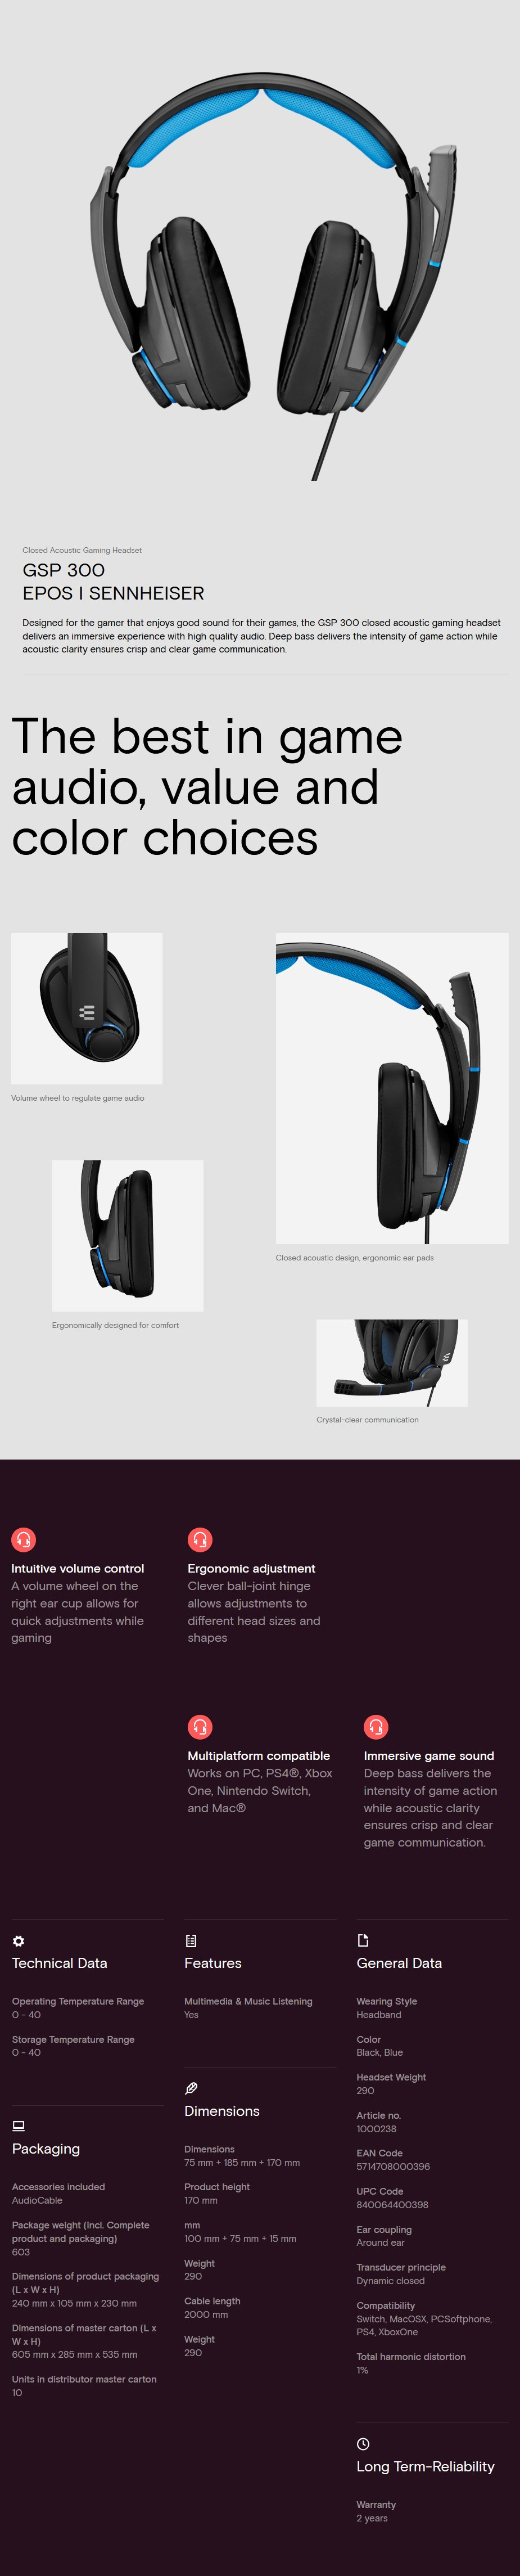 EPOS Sennheiser GSP 300 Closed Back Gaming Headset - Desktop Overview 1